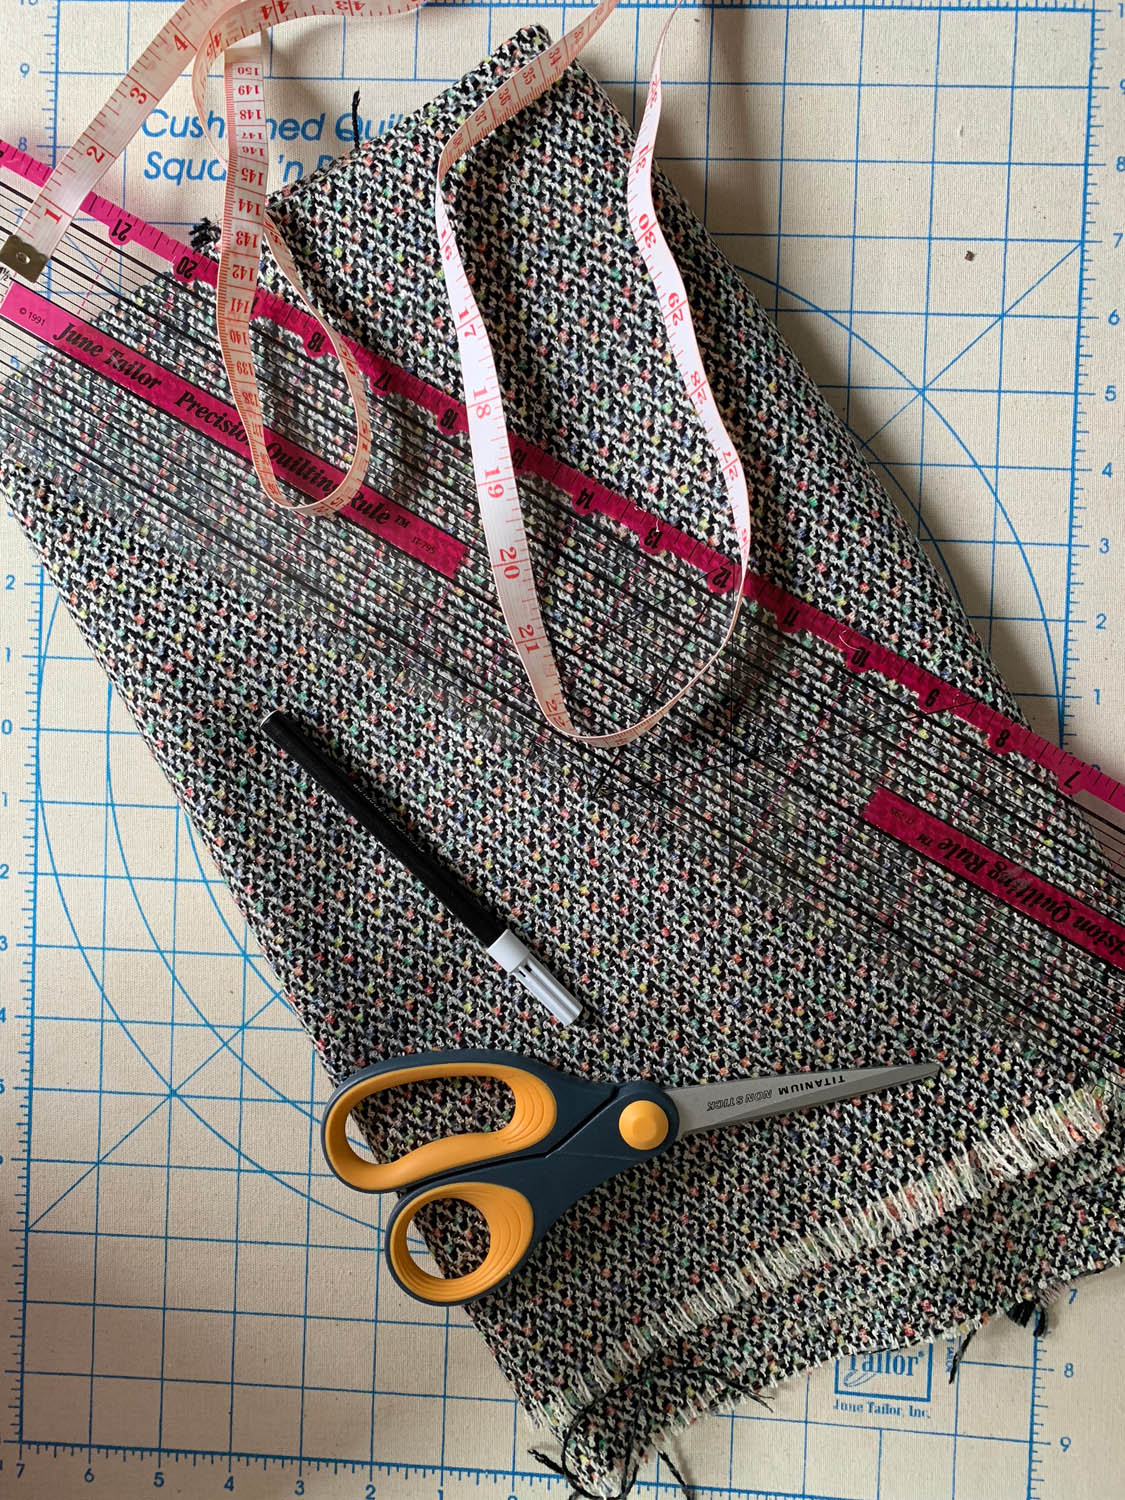 upholstery fabric yardage with scissors marking pen and ruler